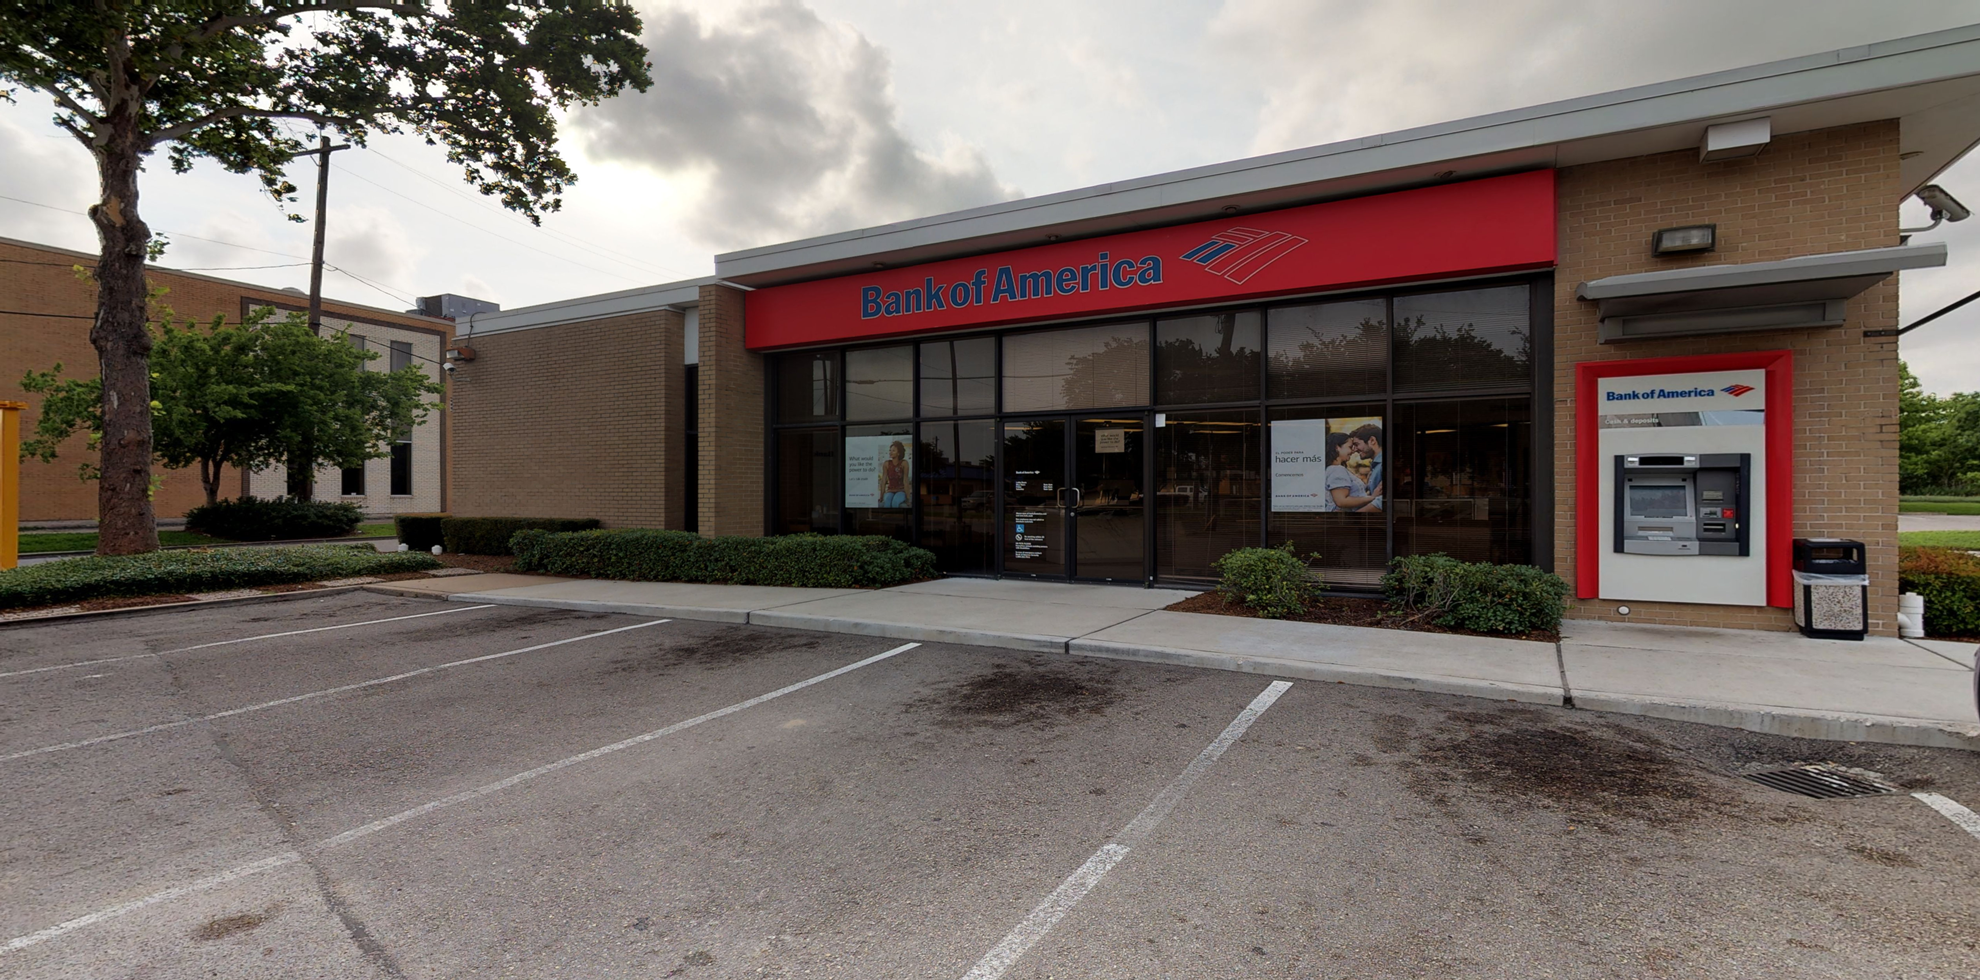 Bank of America financial center with drive-thru ATM | 1127 Edgebrook Dr, Houston, TX 77034